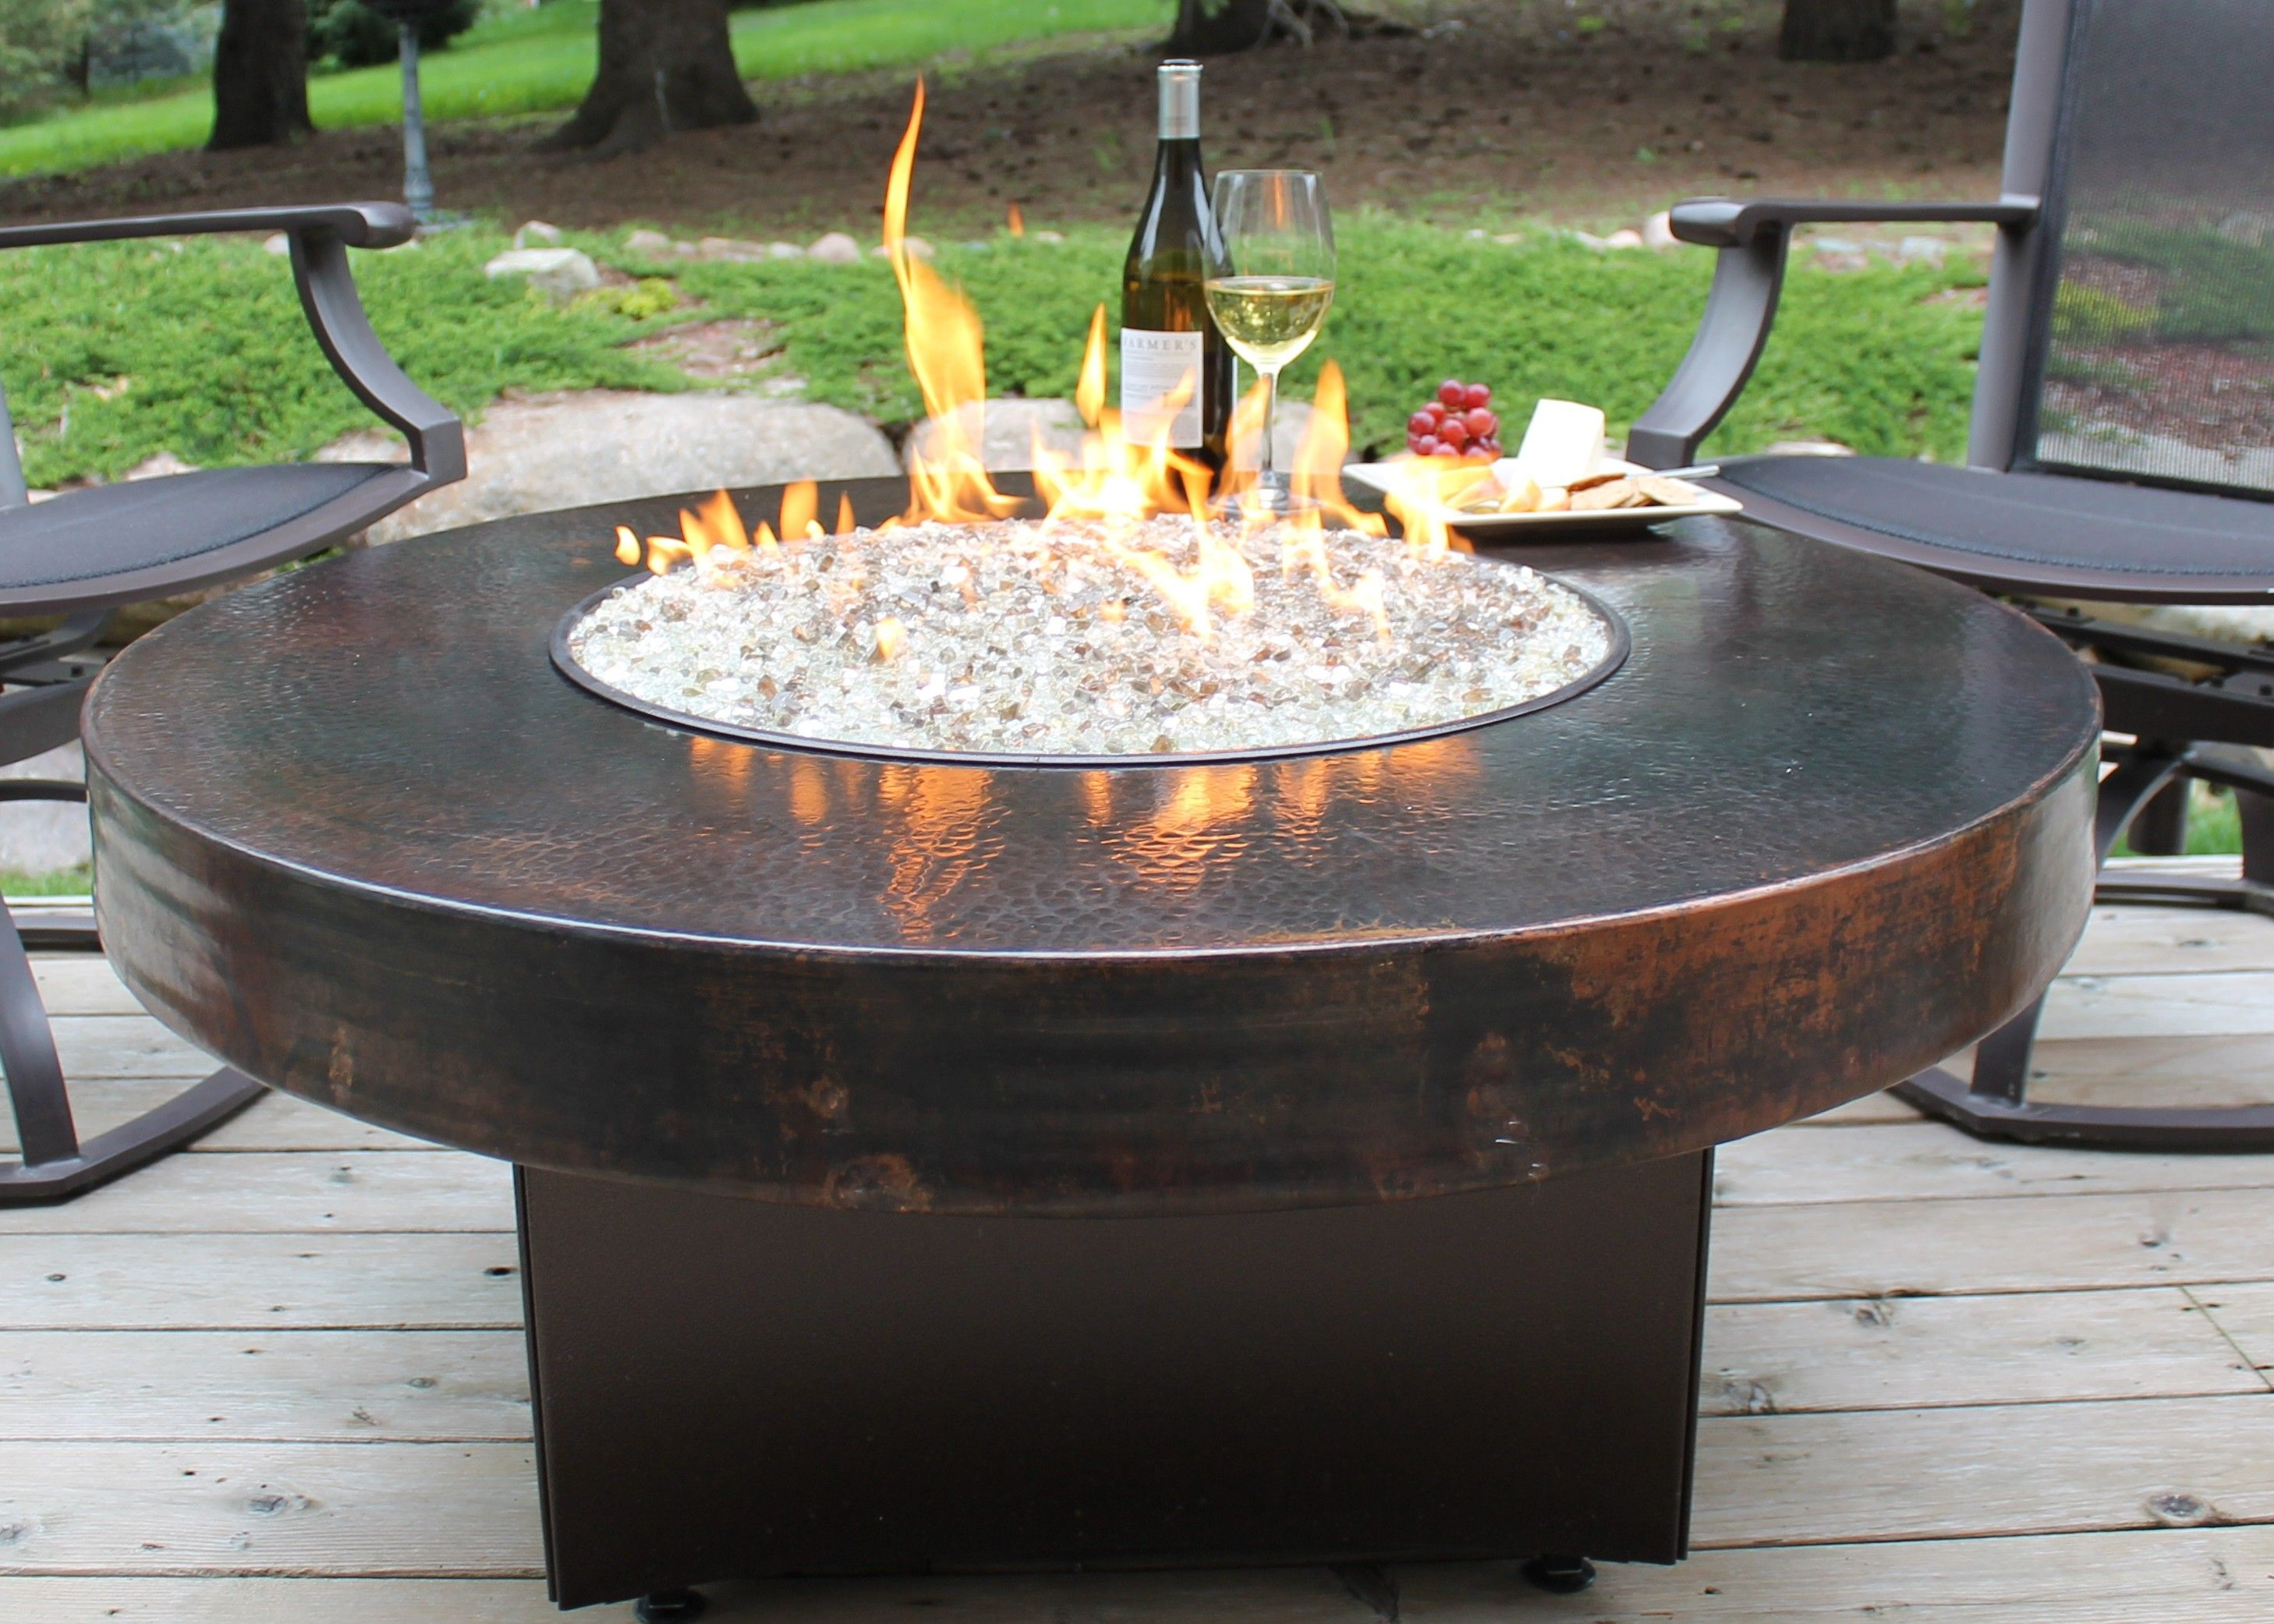 Oriflamme Gas Fire Pit Table Hammered Copper Somber Outdoor within size 2916 X 2083